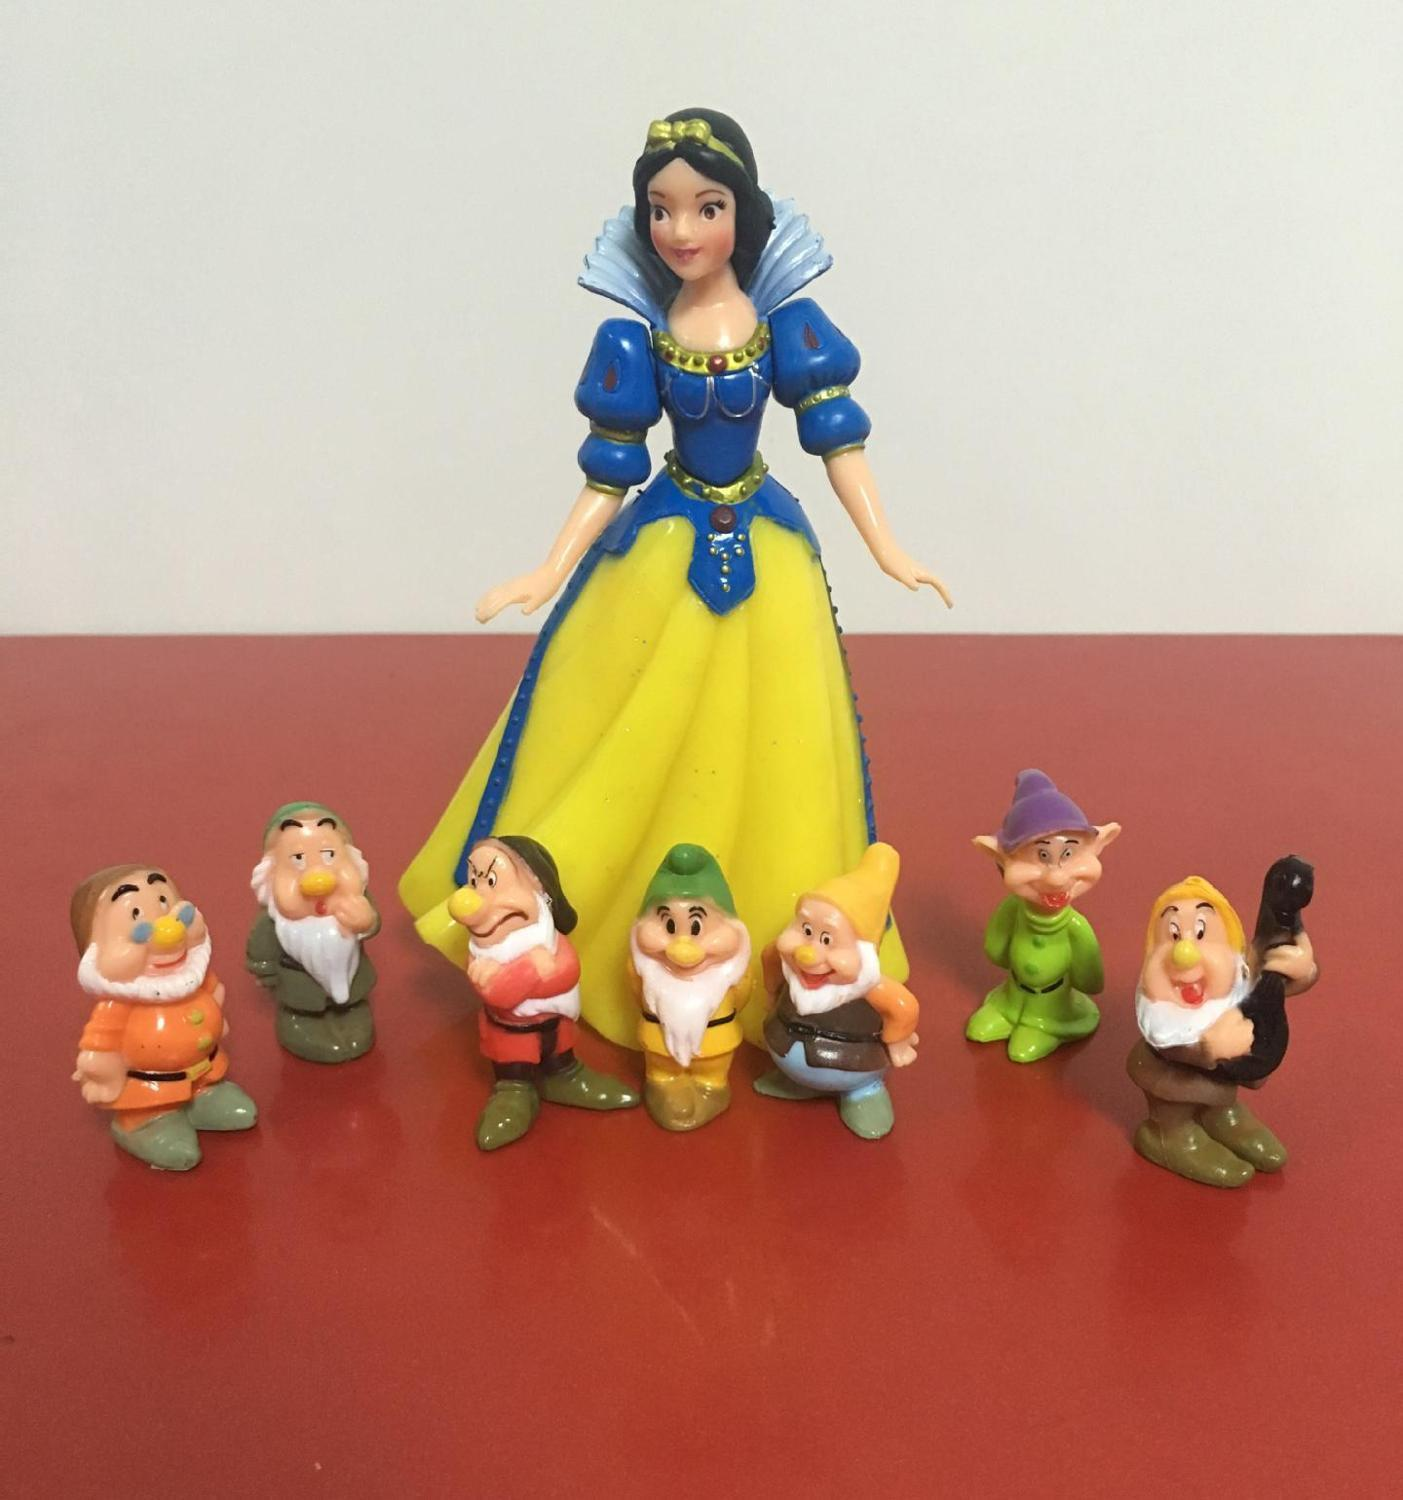 Fashionable White Princess and Seven Dwarfs Toy Set Toy Dolls Micro Landscape Animated Toys Live Sample Jewelry Toys(China (Mainland))